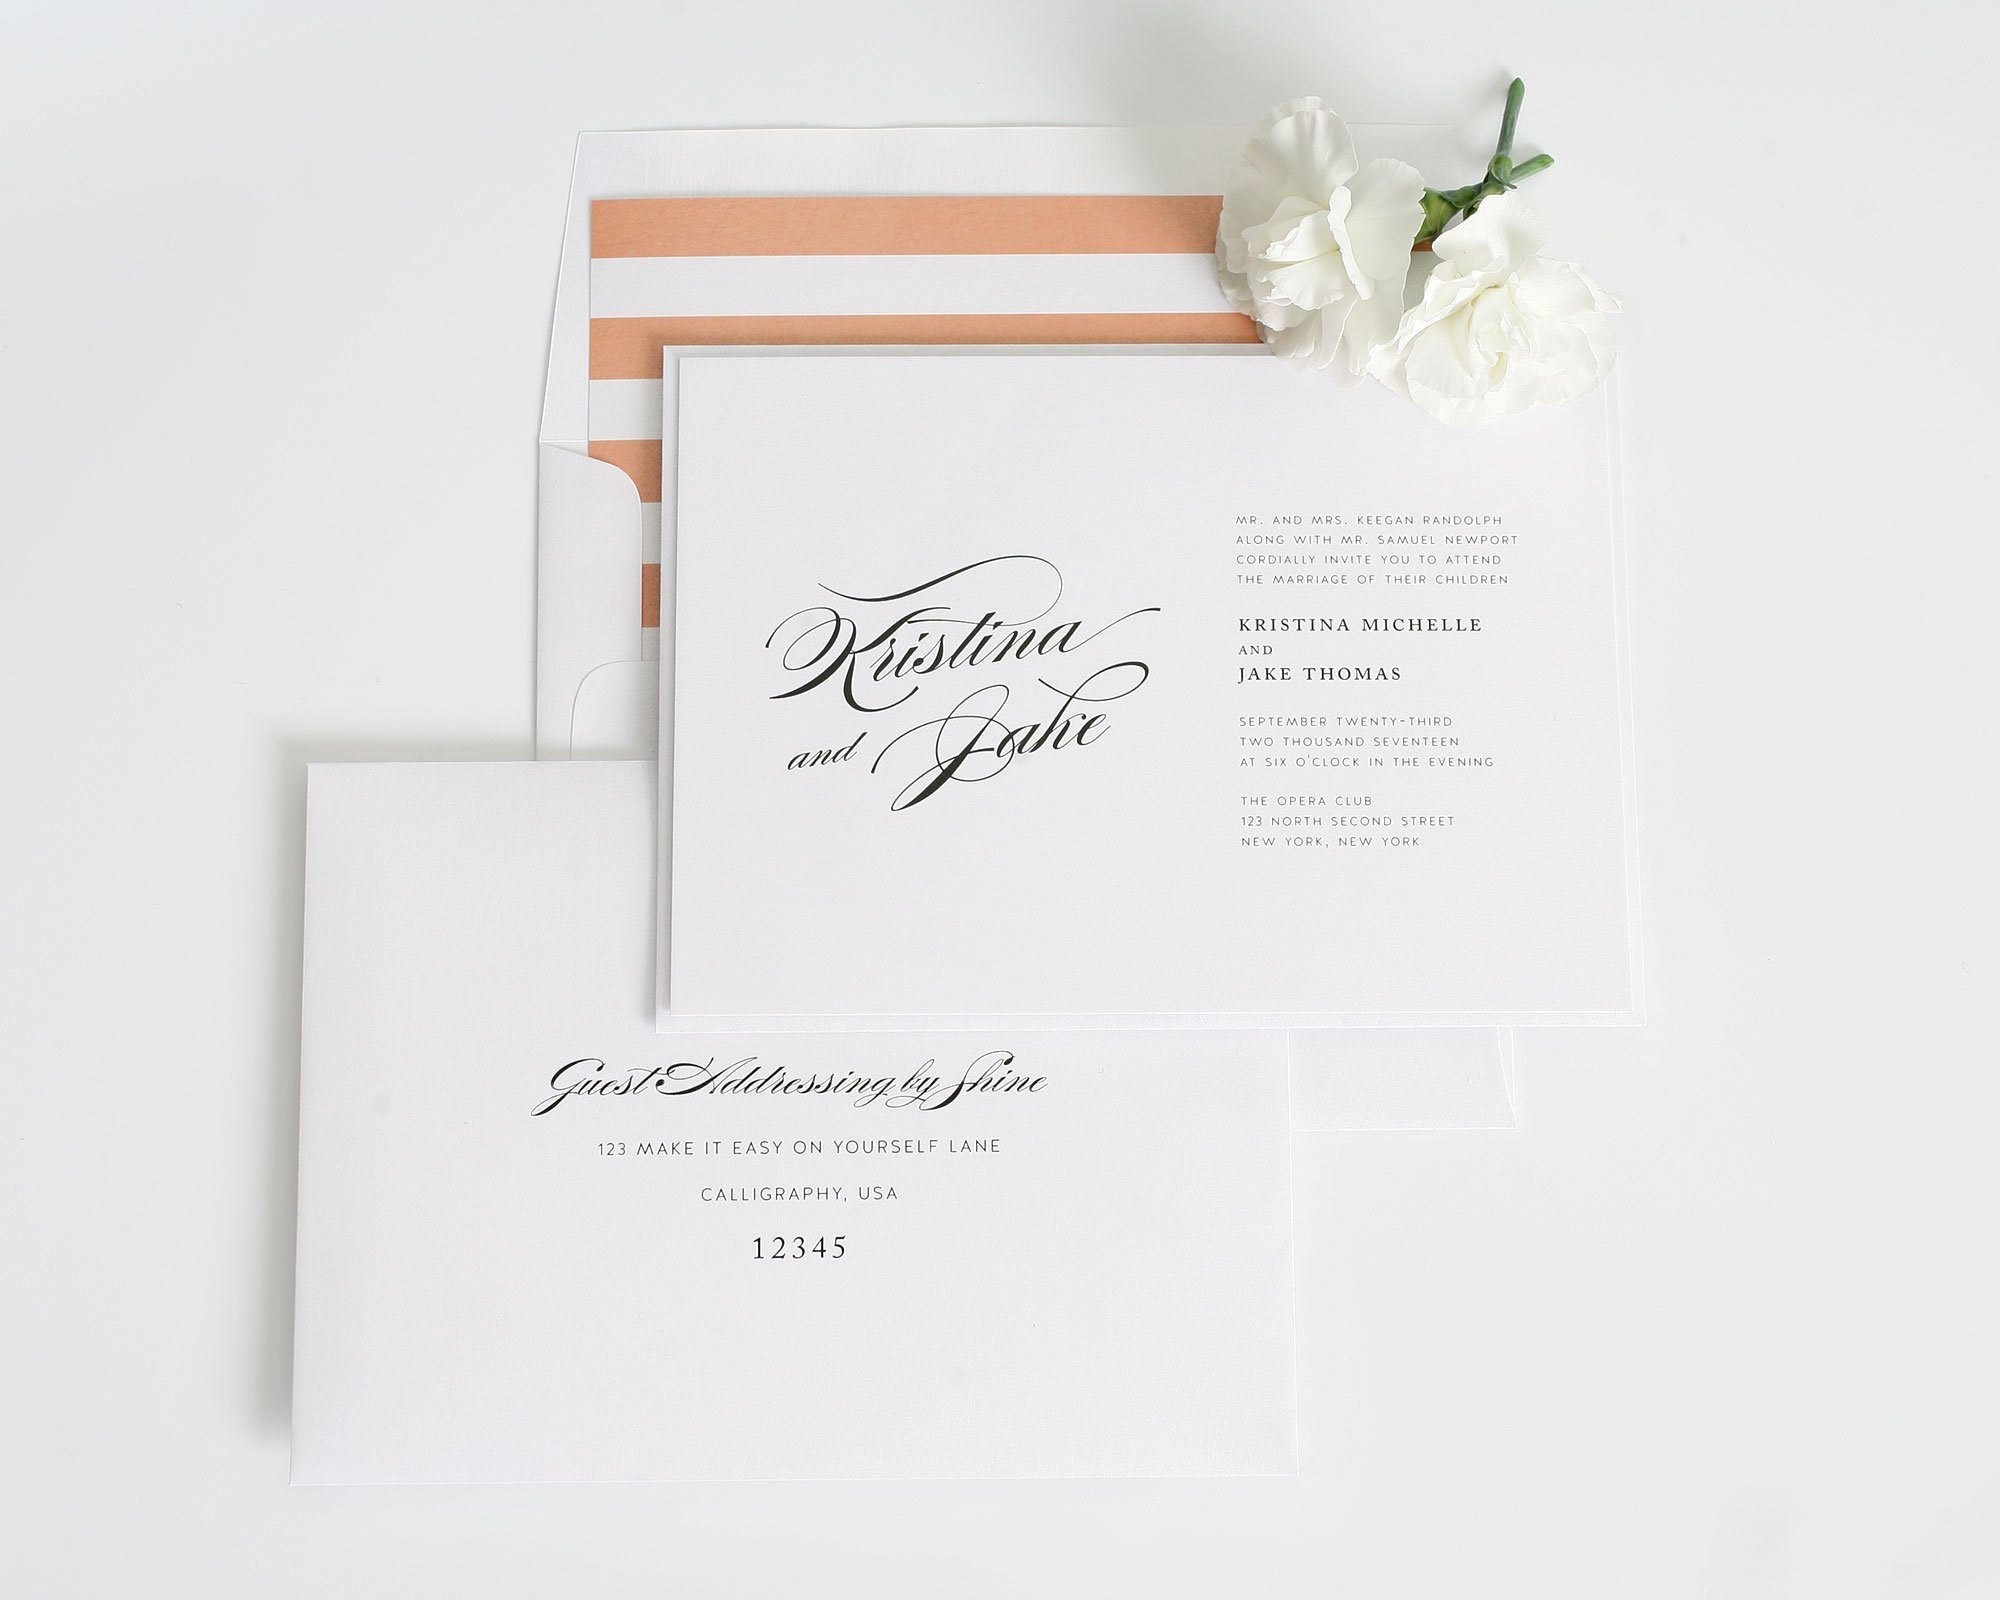 Romantic glamour wedding invites in peach